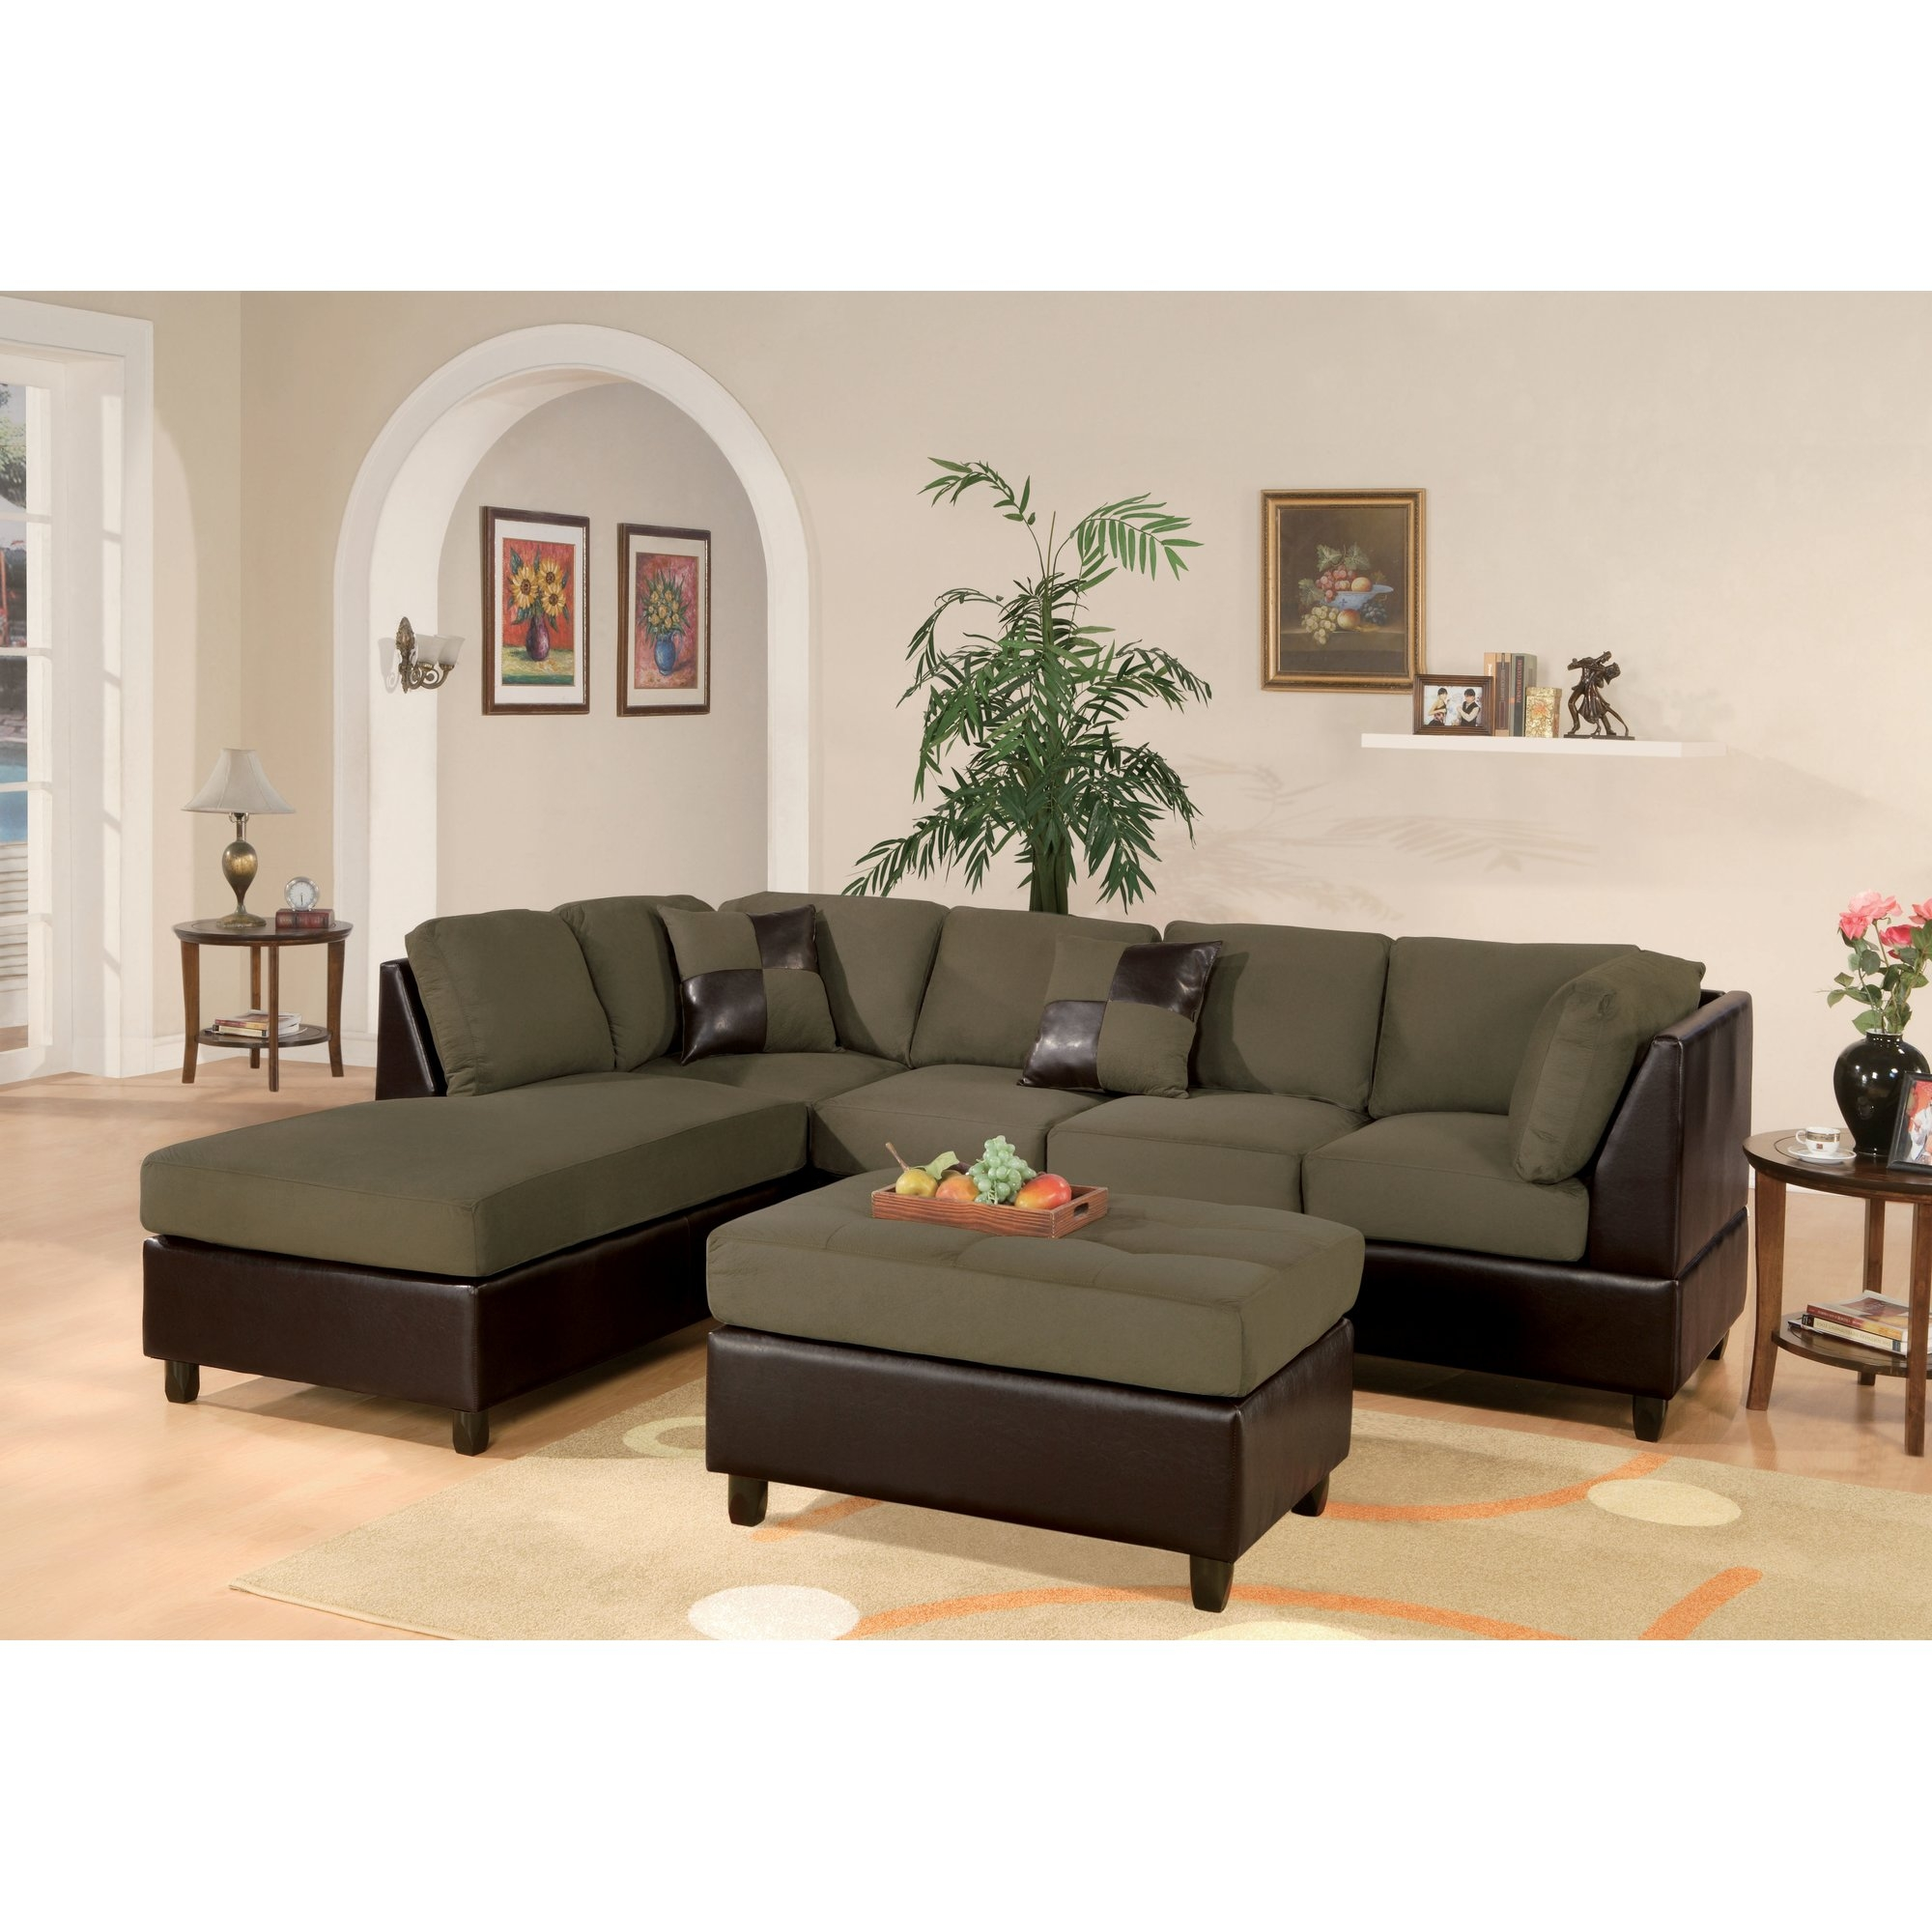 Faux Leather Sectional Sofas Youll Love Wayfair Inside Camel Colored Sectional Sofa (Image 10 of 15)